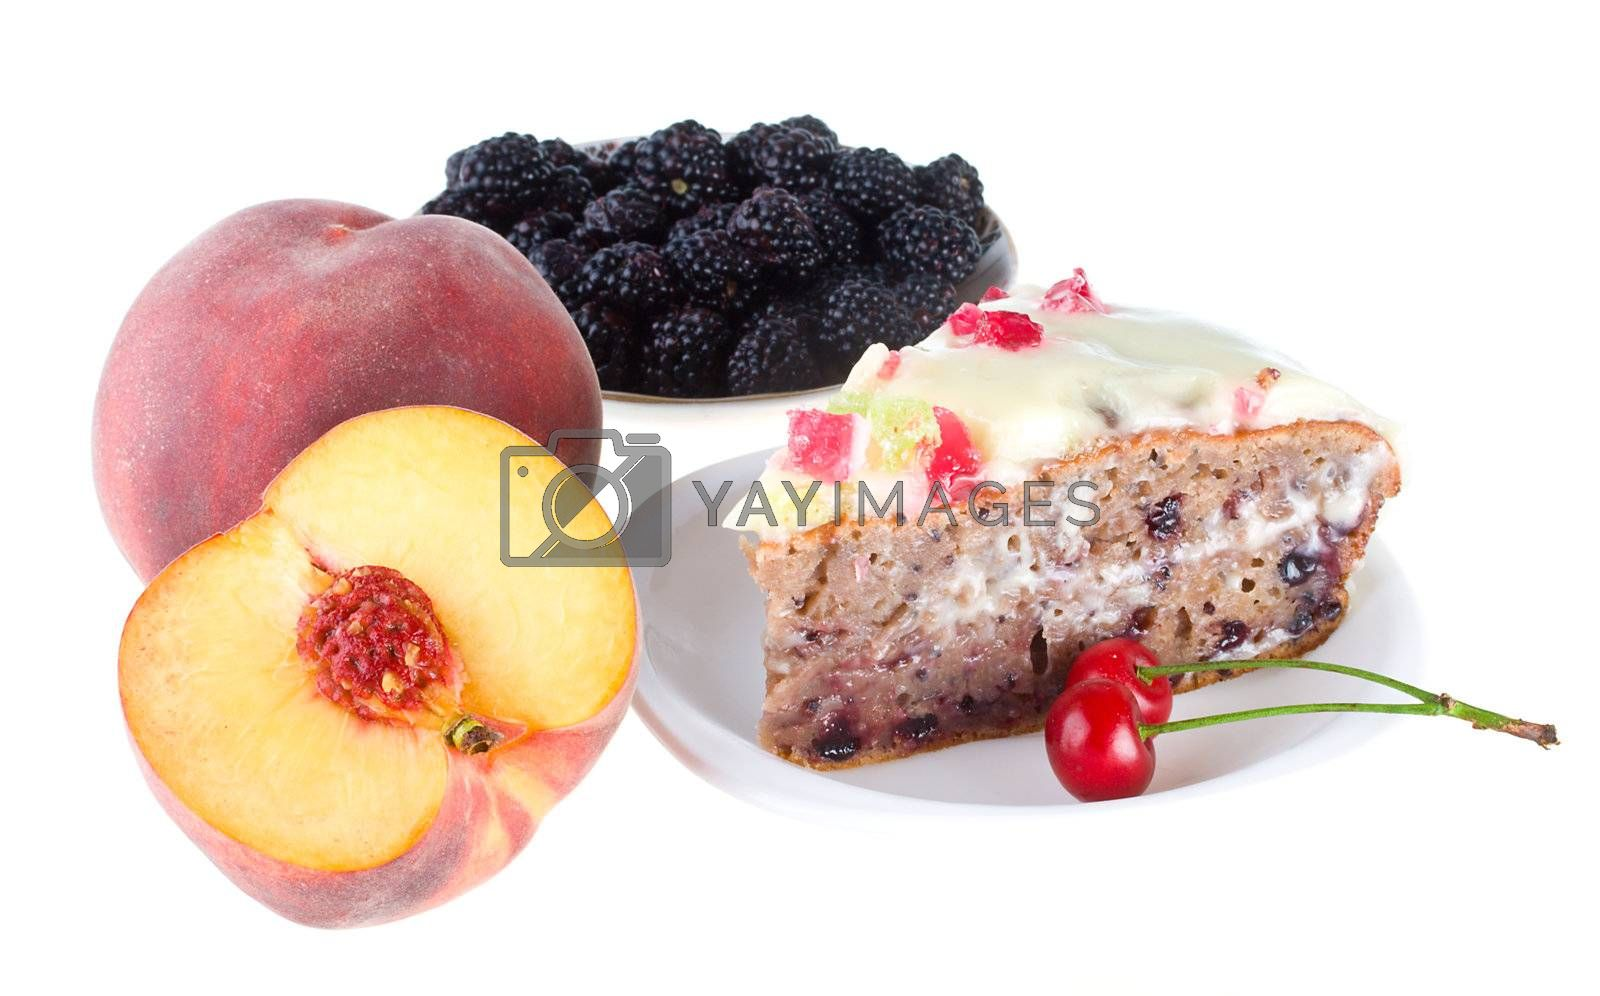 Royalty free image of fruits and cake by Alekcey